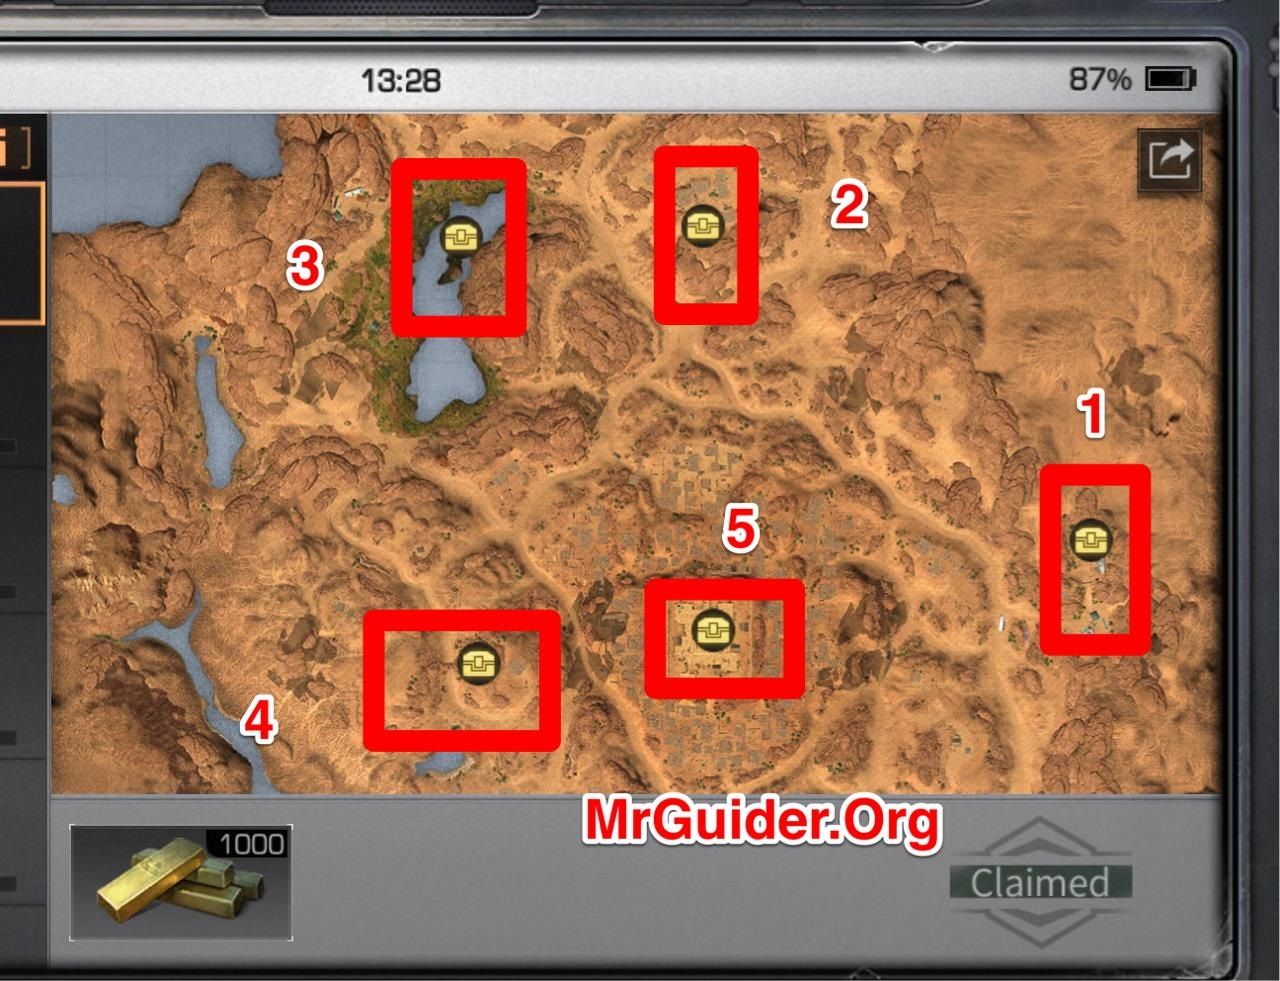 LifeAfter: Sandcastle Exploration Chest, Photo Quests - MrGuider